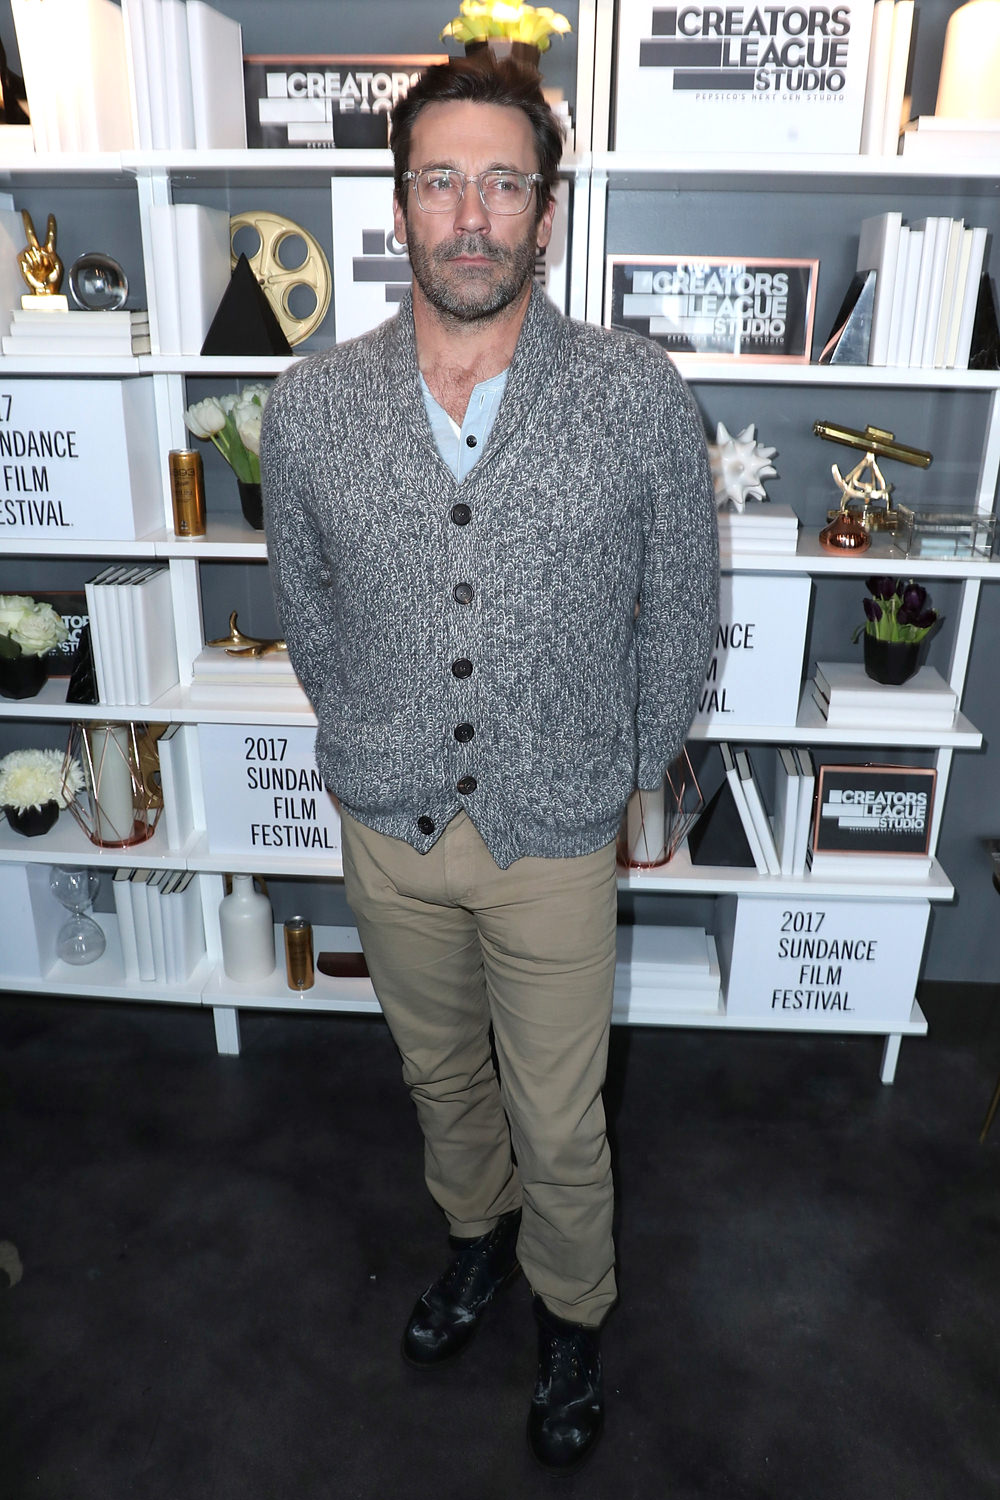 Jon Hamm is at the Sundance Film Festival, Ready to Cuddle : Tom + Lorenzo